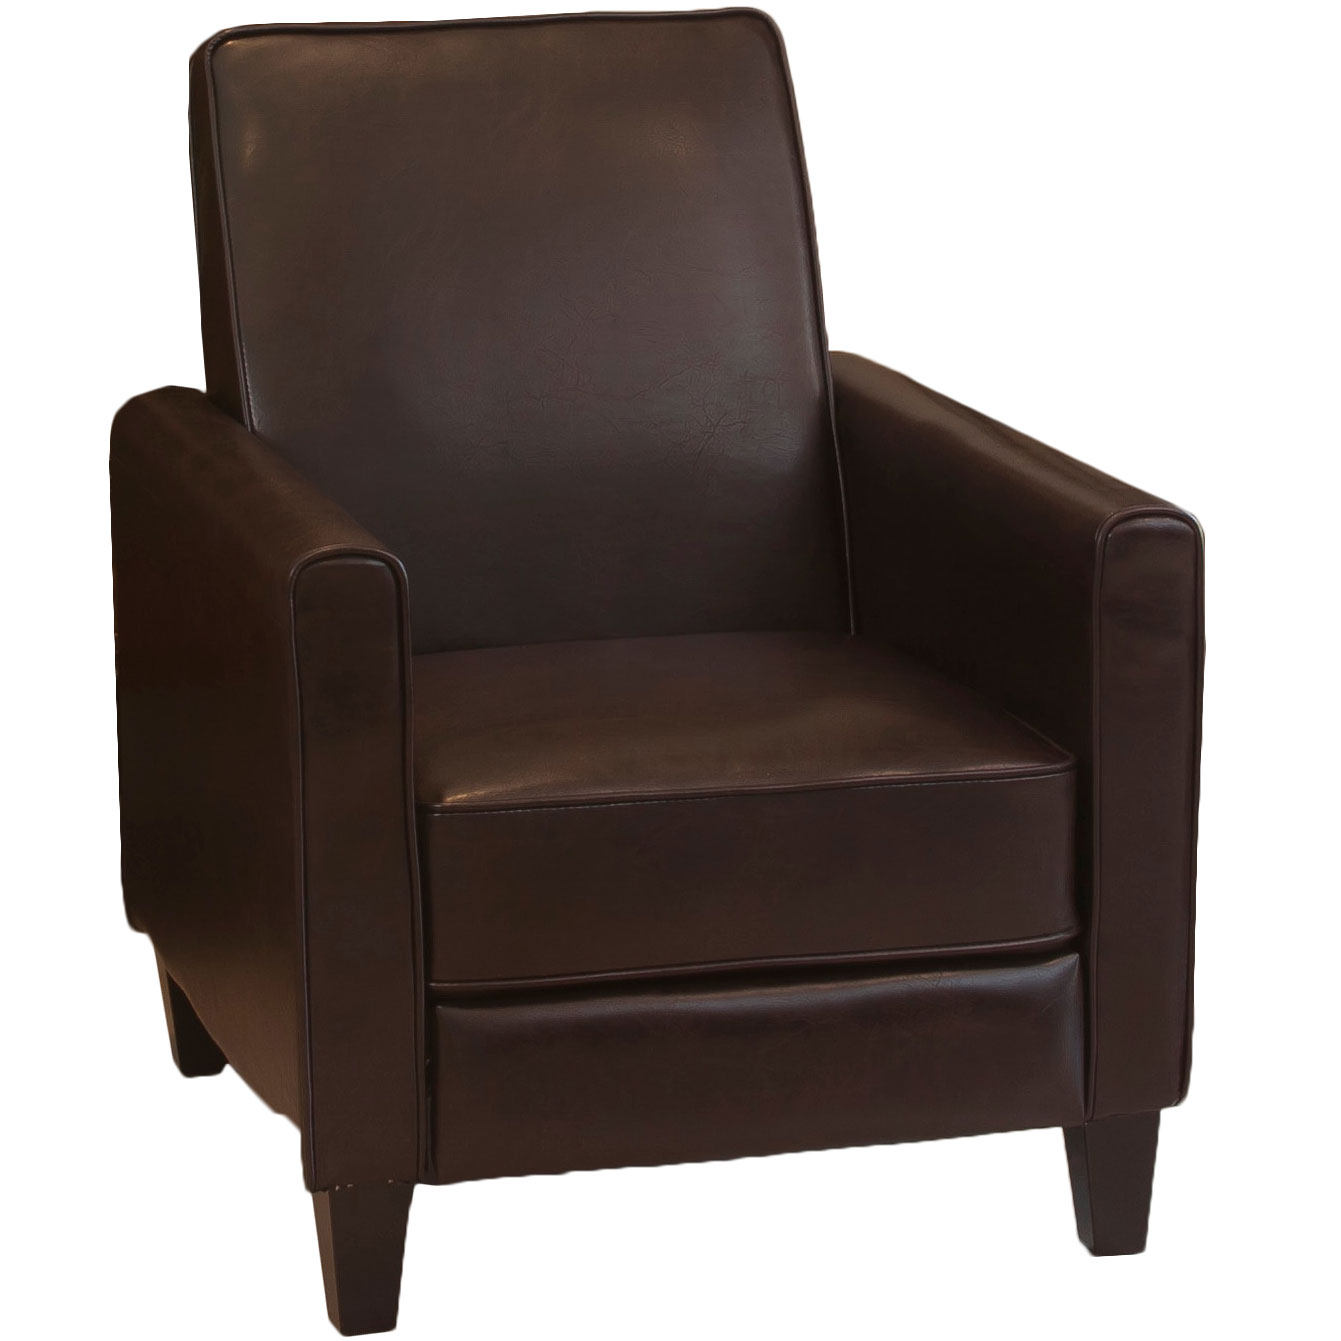 Leather Recliner Club Chair  Accent Chairs at Hayneedle